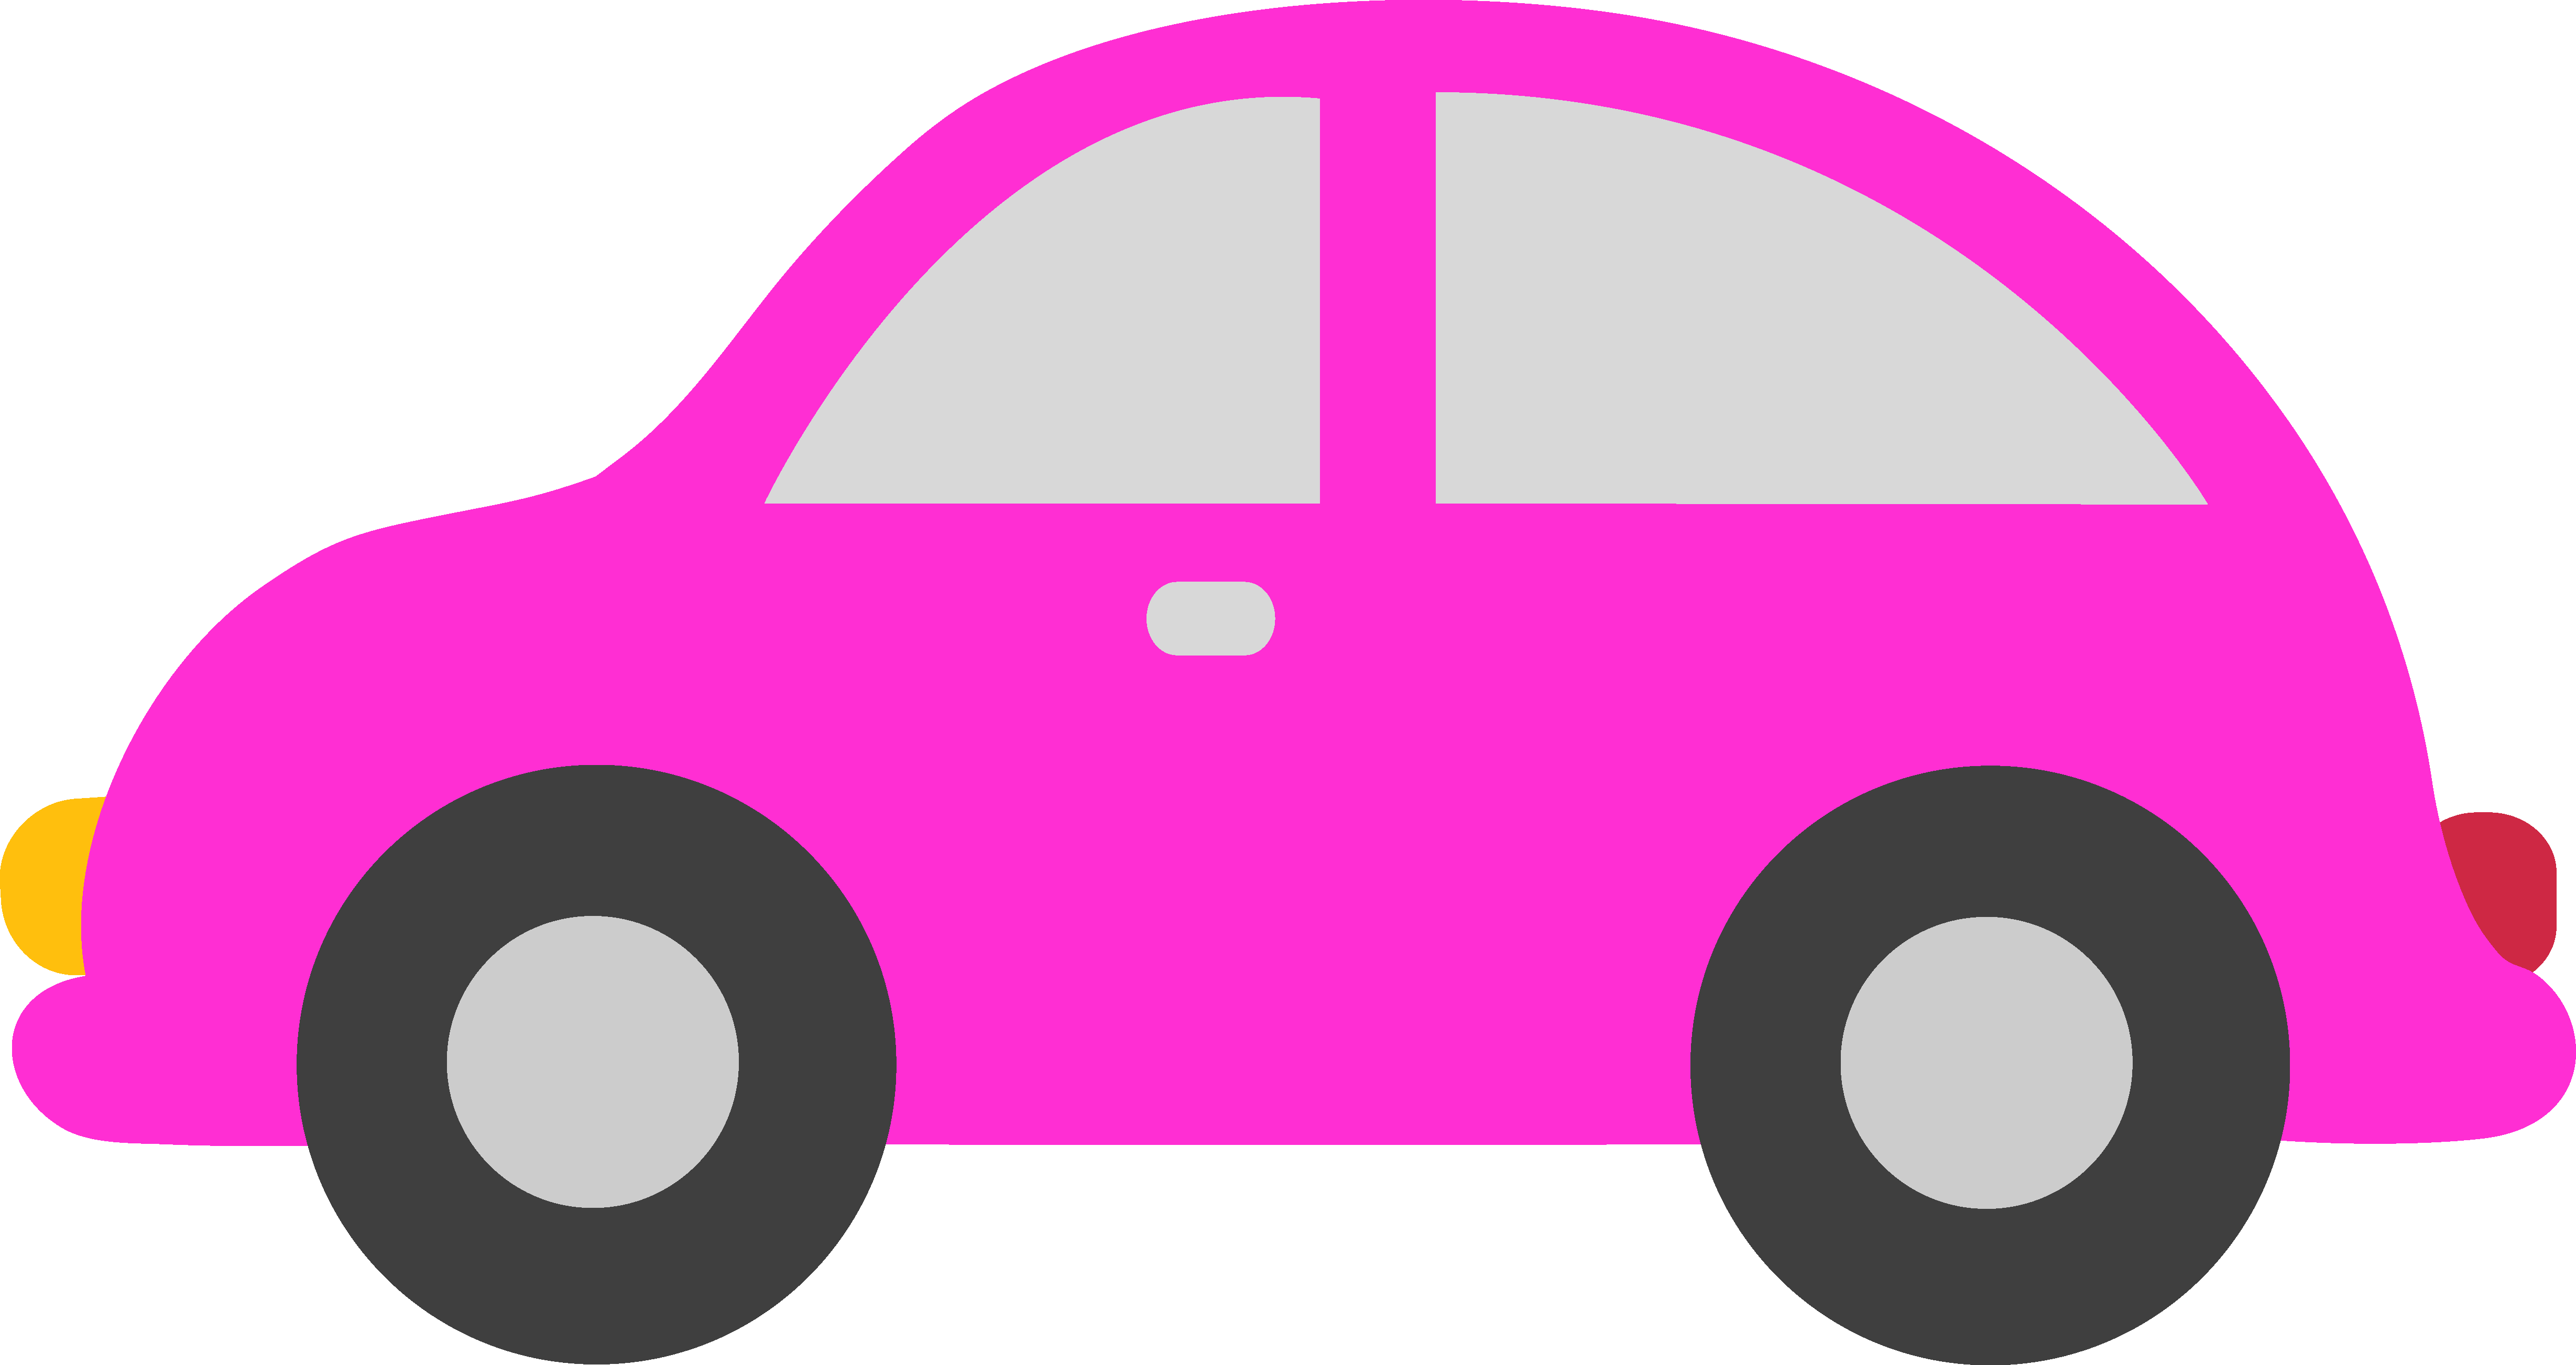 Car clipart: Pink Toy Car Clipart - Toy Car PNG Free